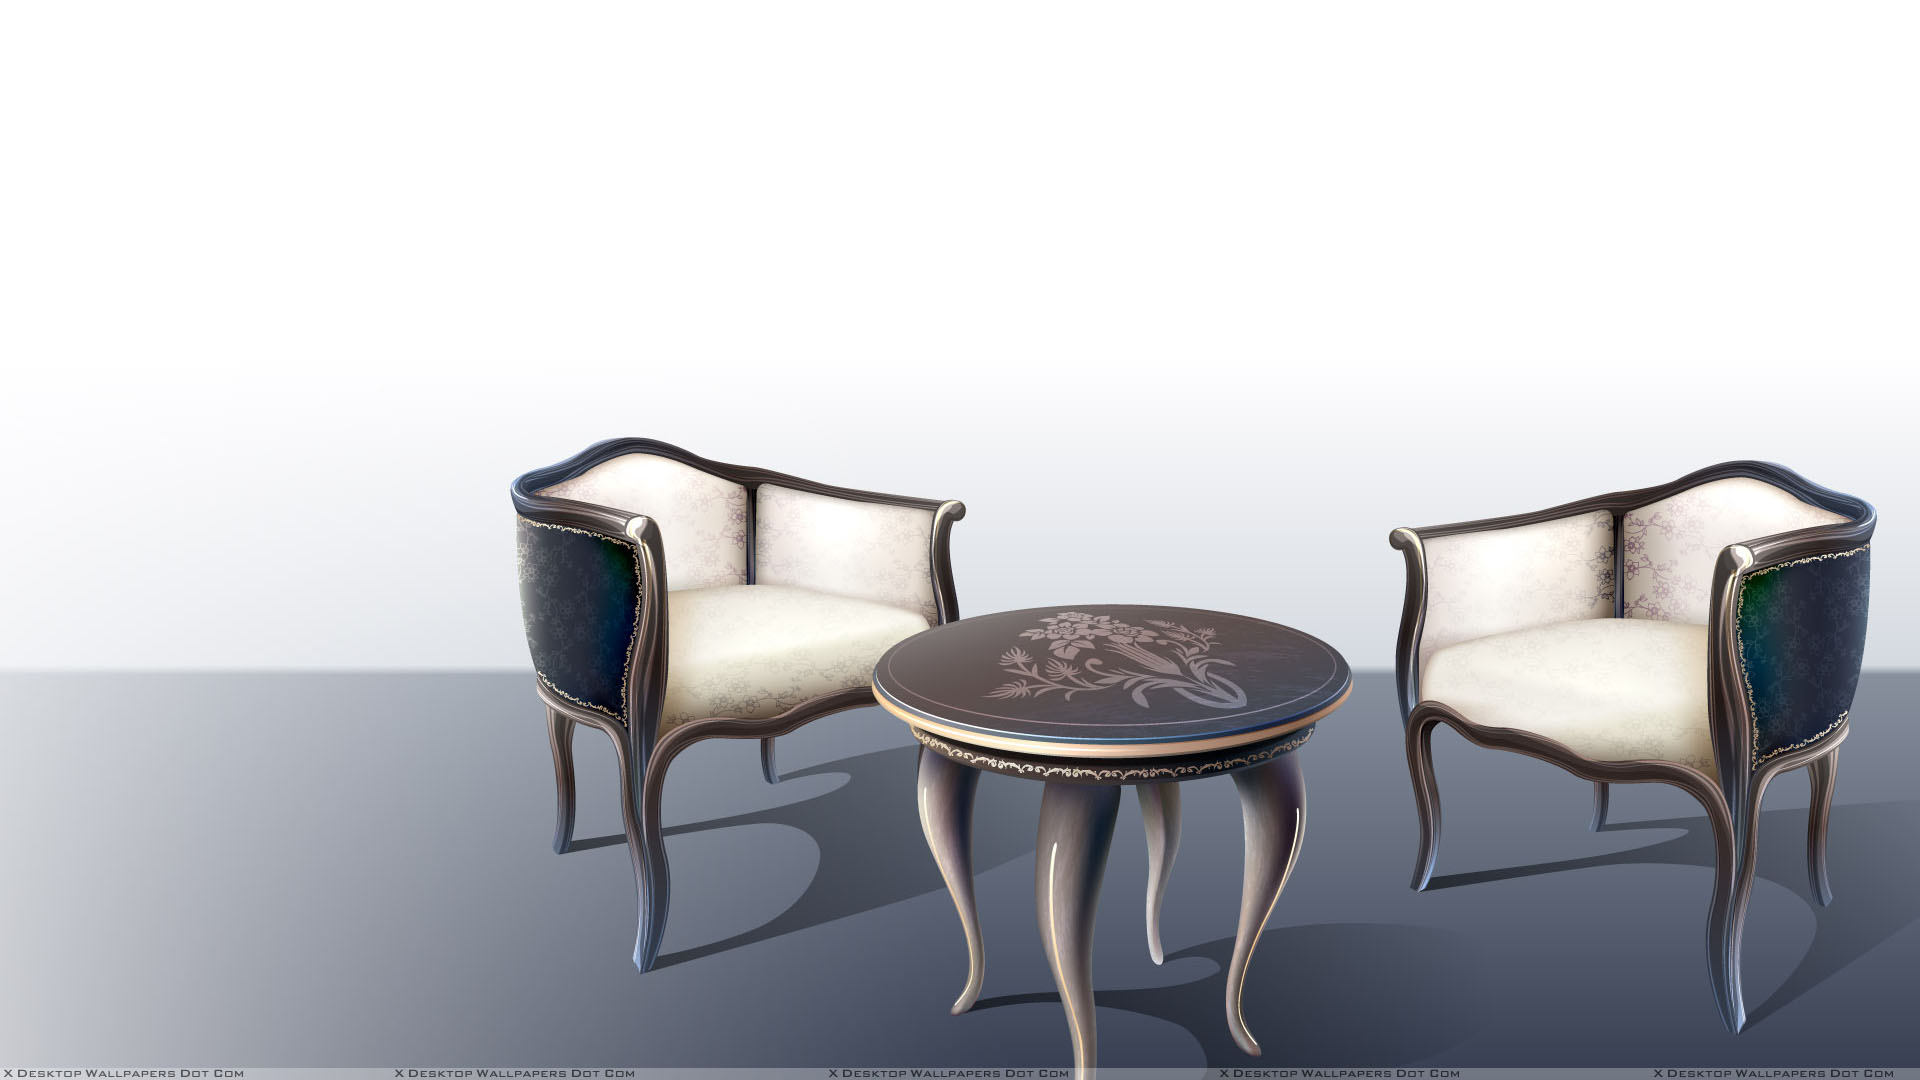 You are viewing wallpaper titled  Two Chairs And Table ...  sc 1 st  xDesktopWallpapers & Two Chairs And Table With White Background Wallpaper